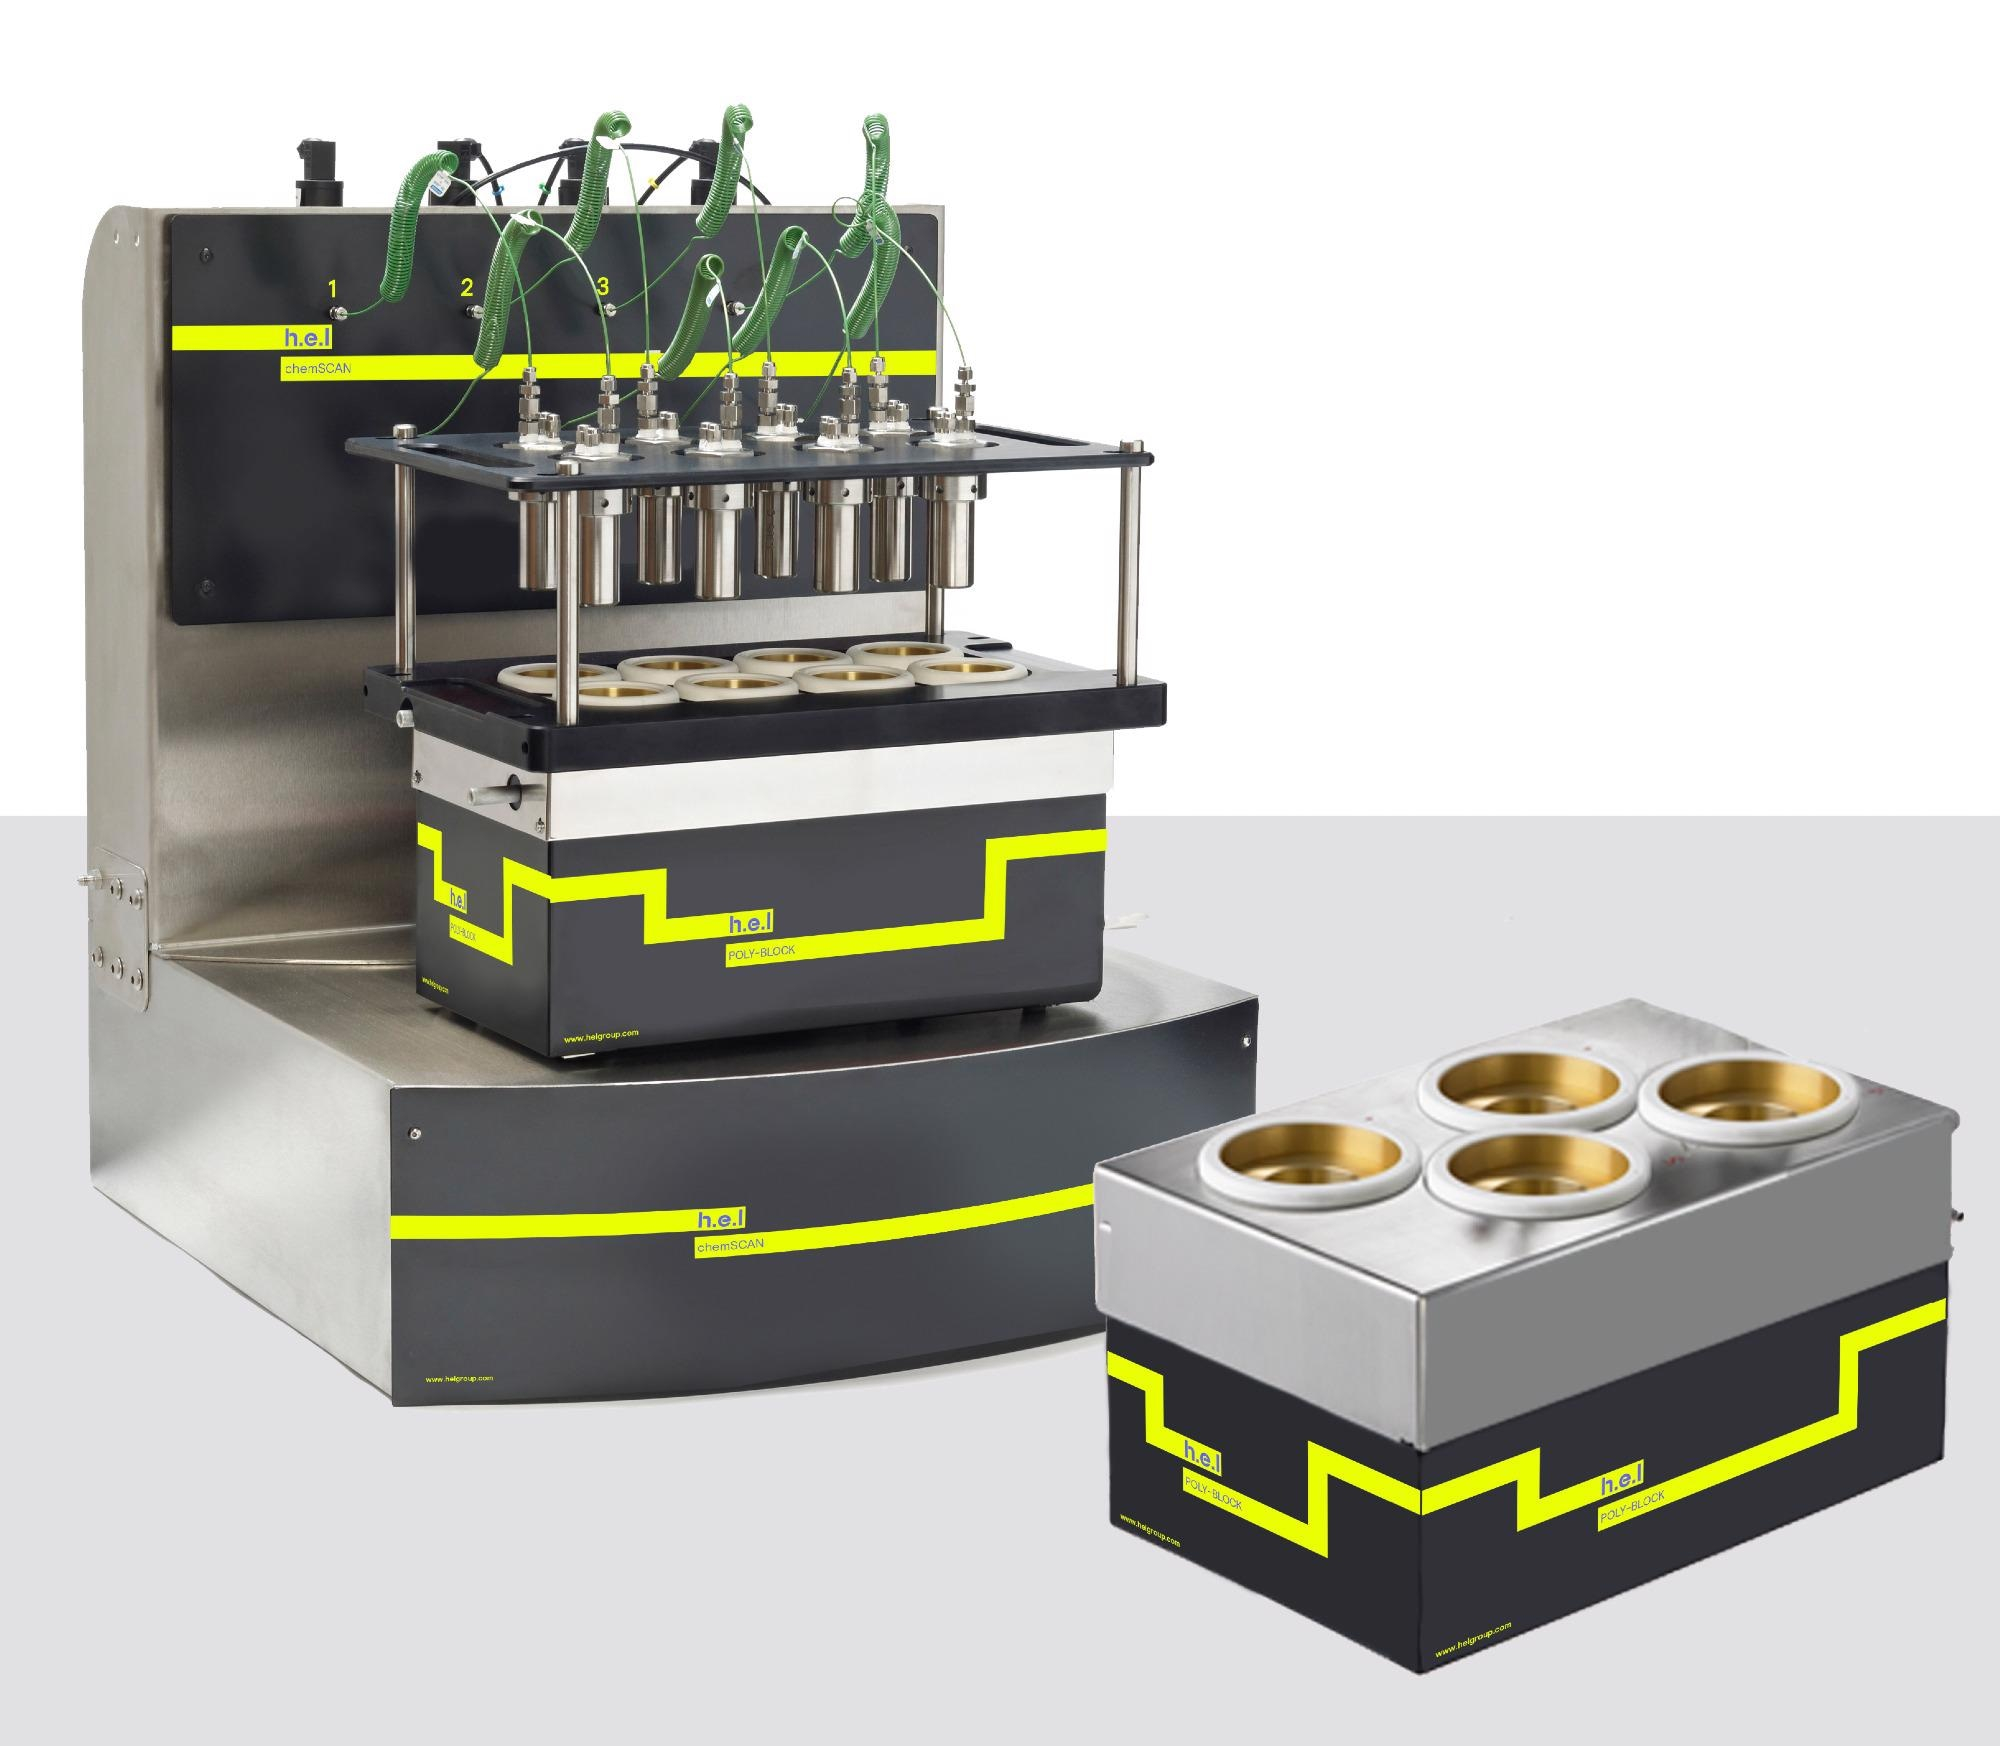 ChemSCAN: Bench-top, automated parallel catalyst screening and development platform